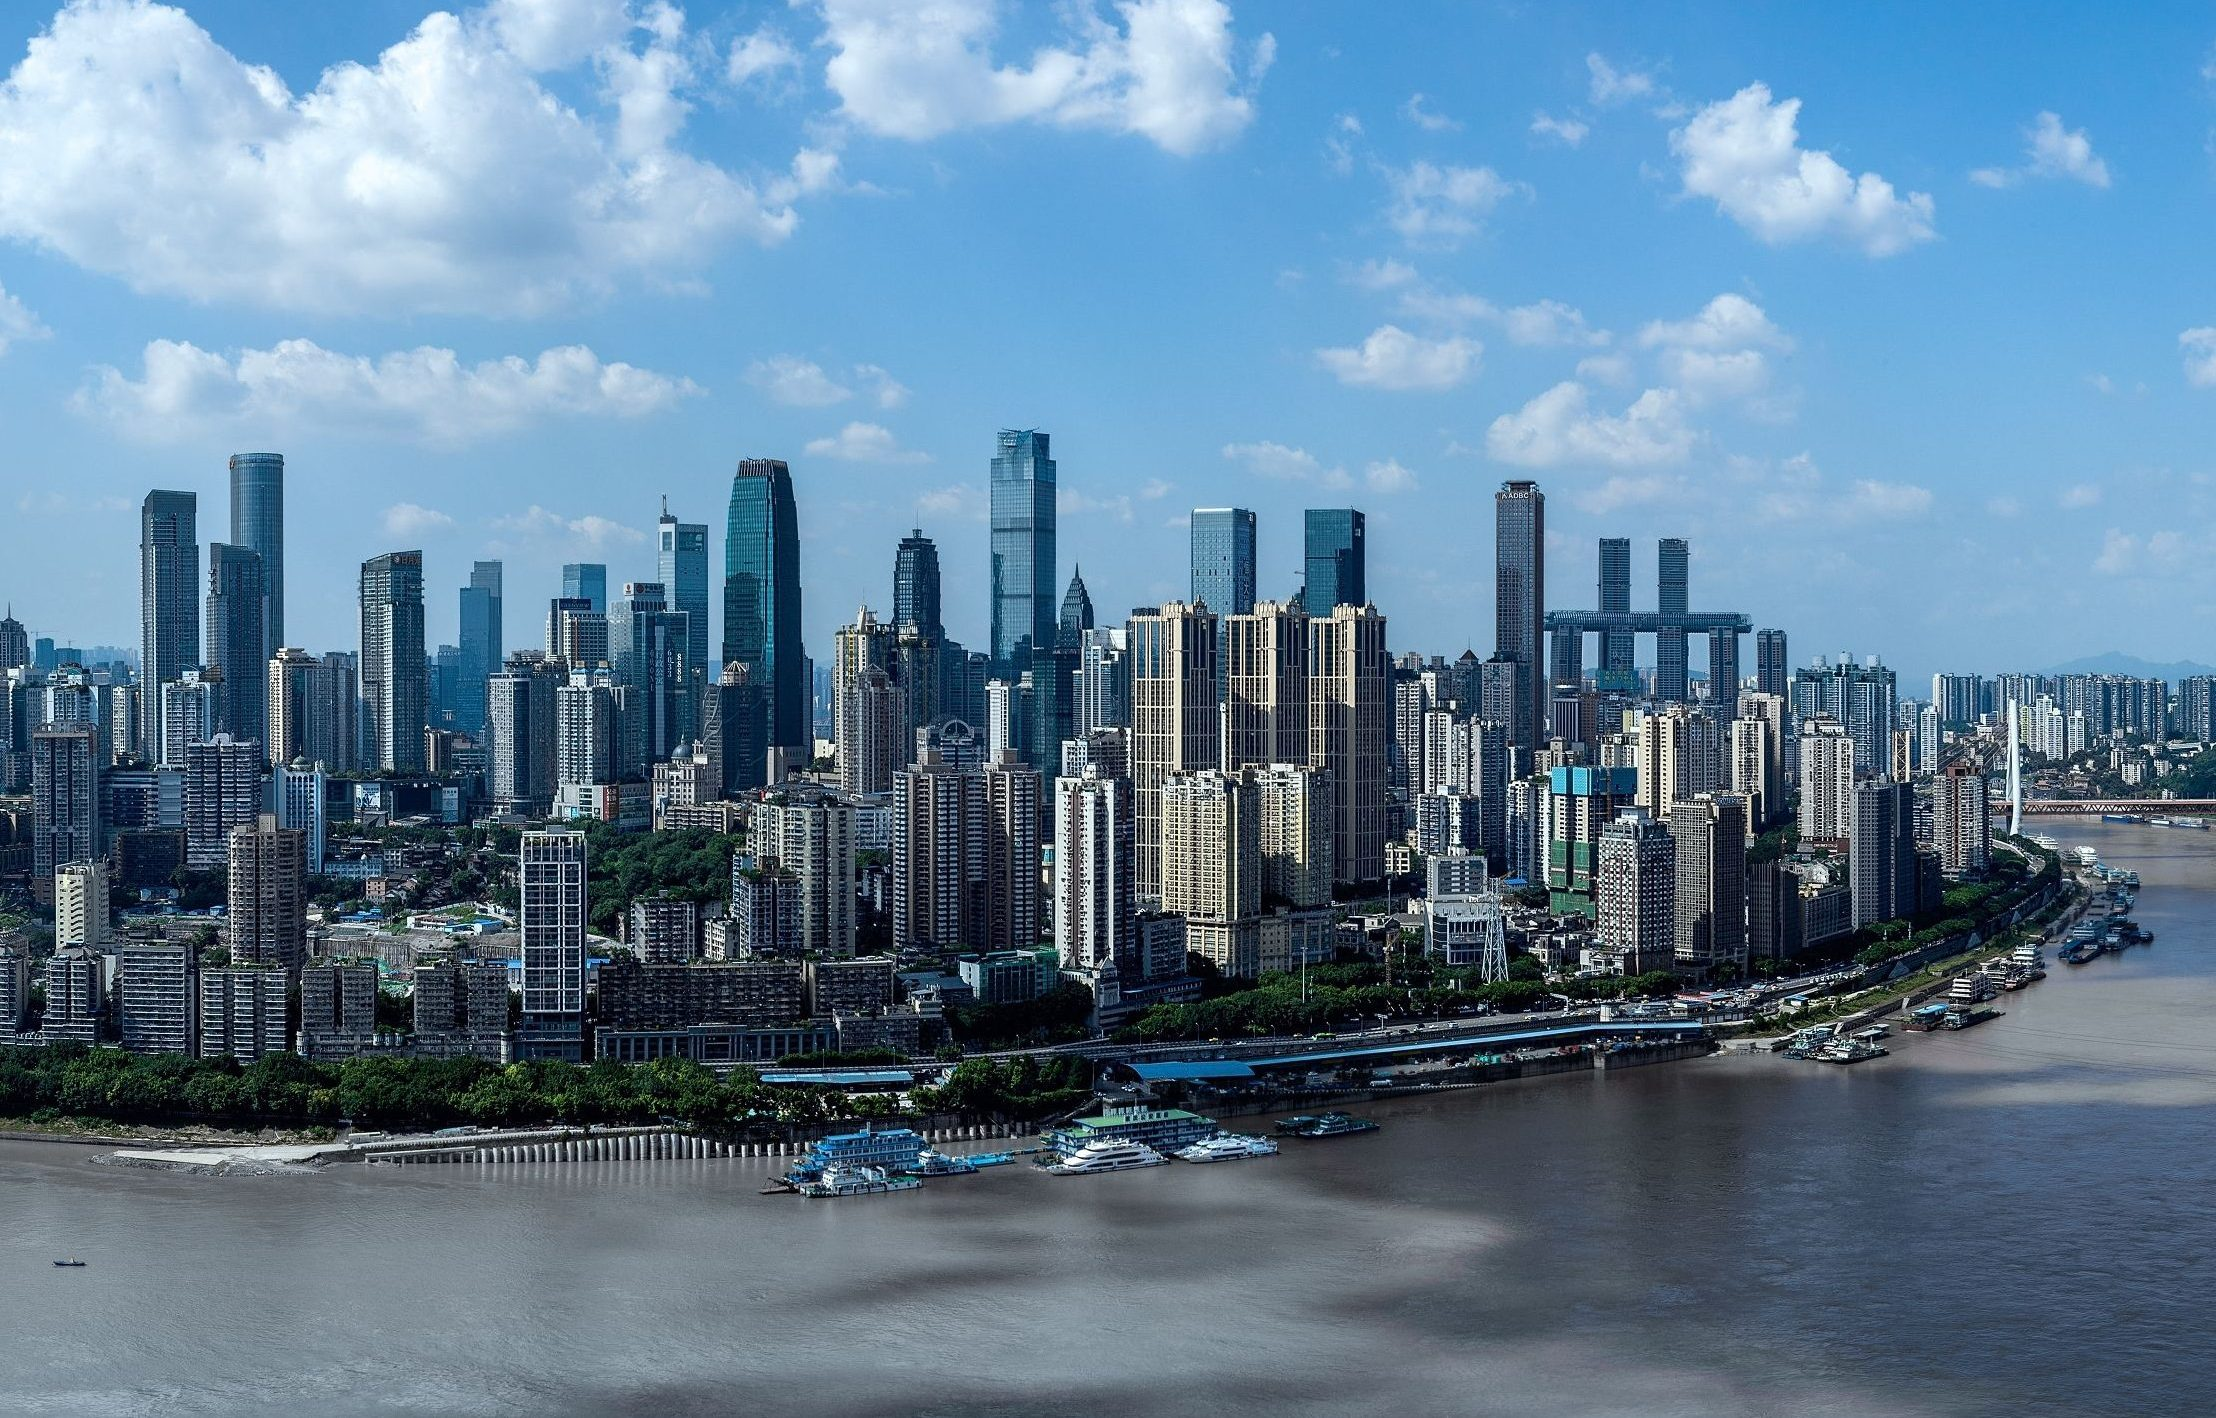 The skyline of Chongqing in Southwest China.